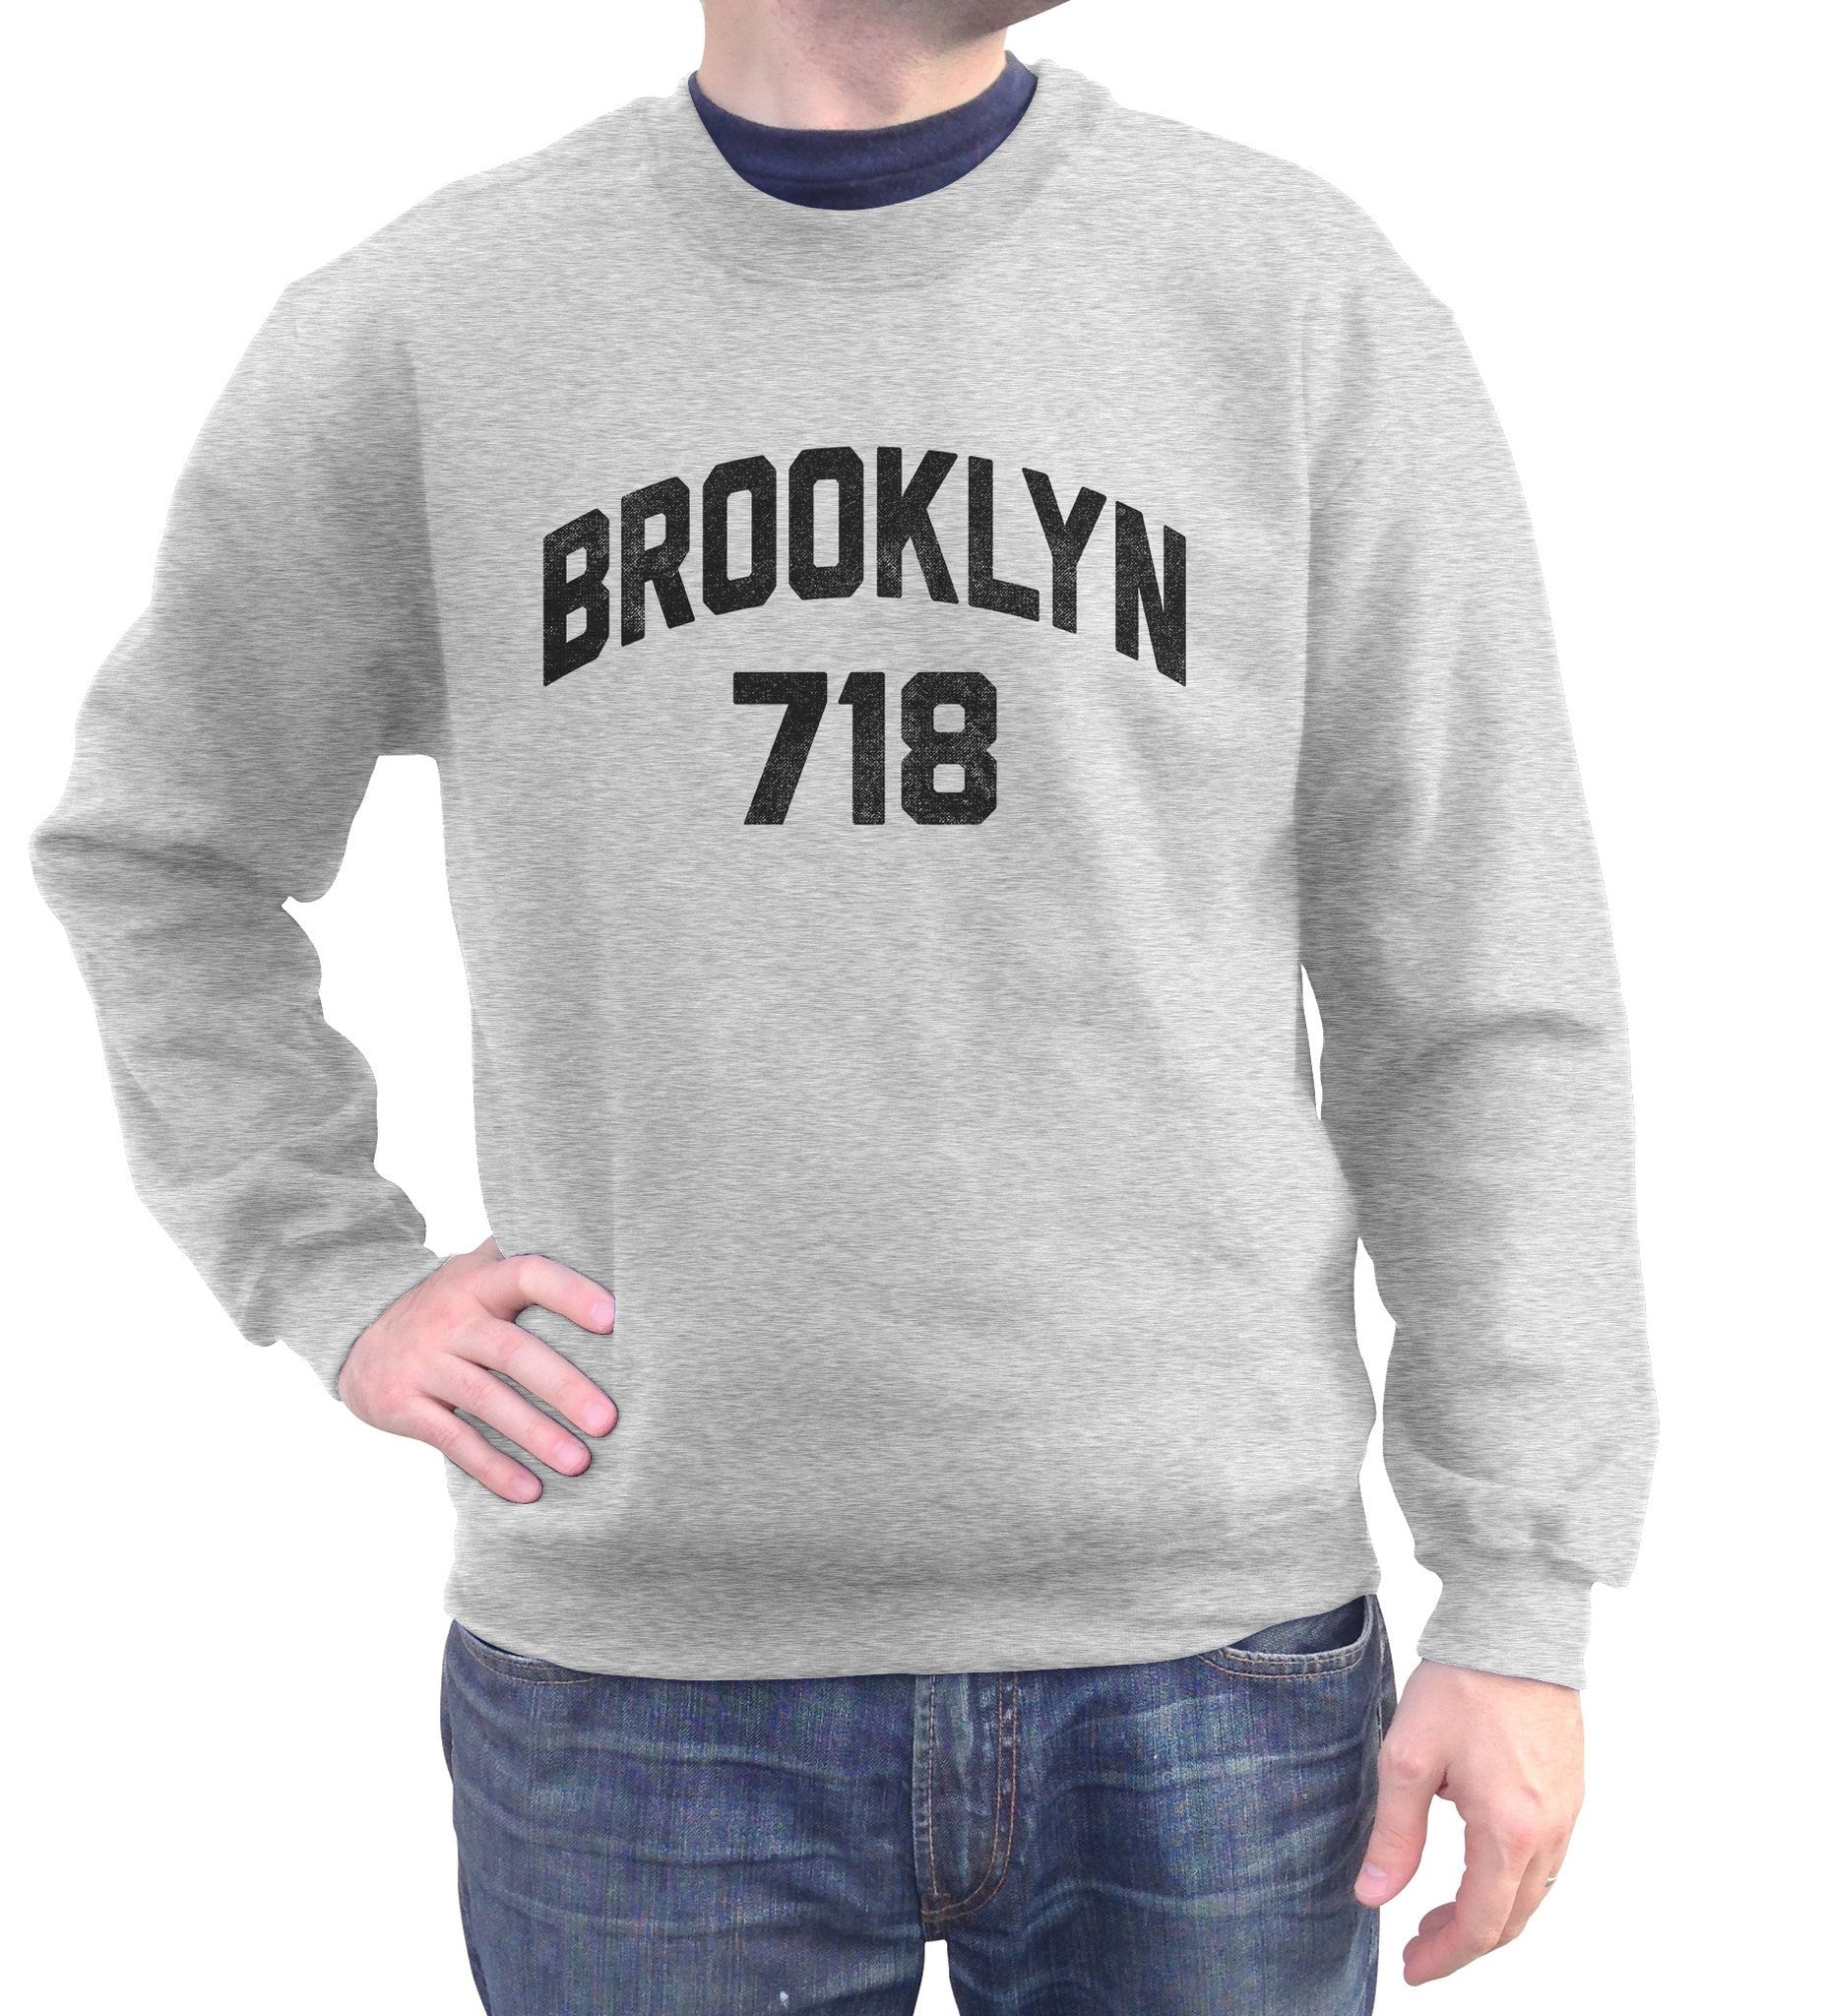 Unisex Brooklyn 718 Area Code Sweatshirt